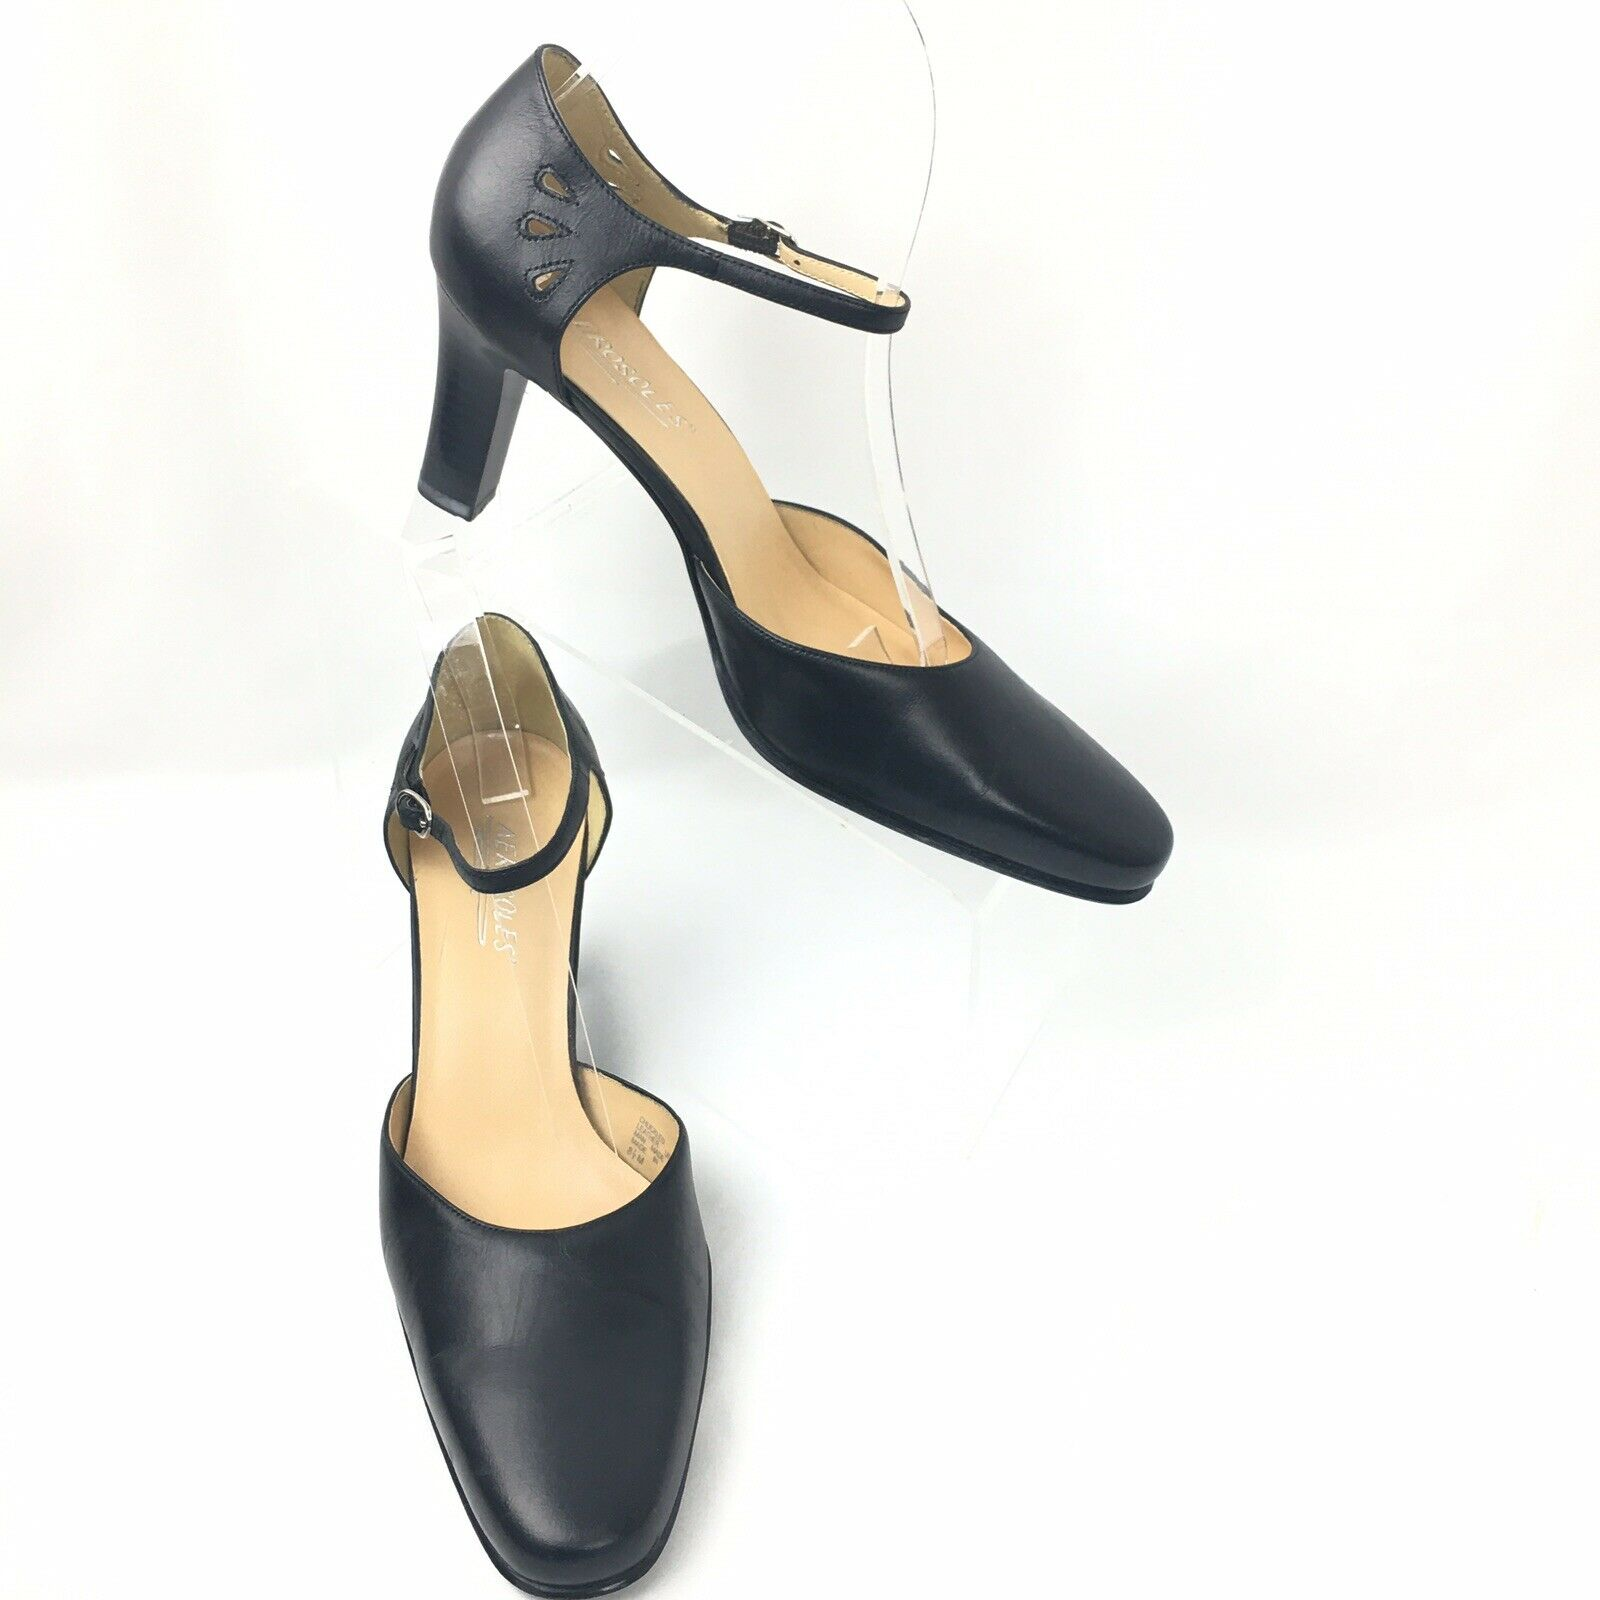 Aerosoles 8.5 M Ankle Strap Heels Chuckled Black Cut Out Leather Closed Toe